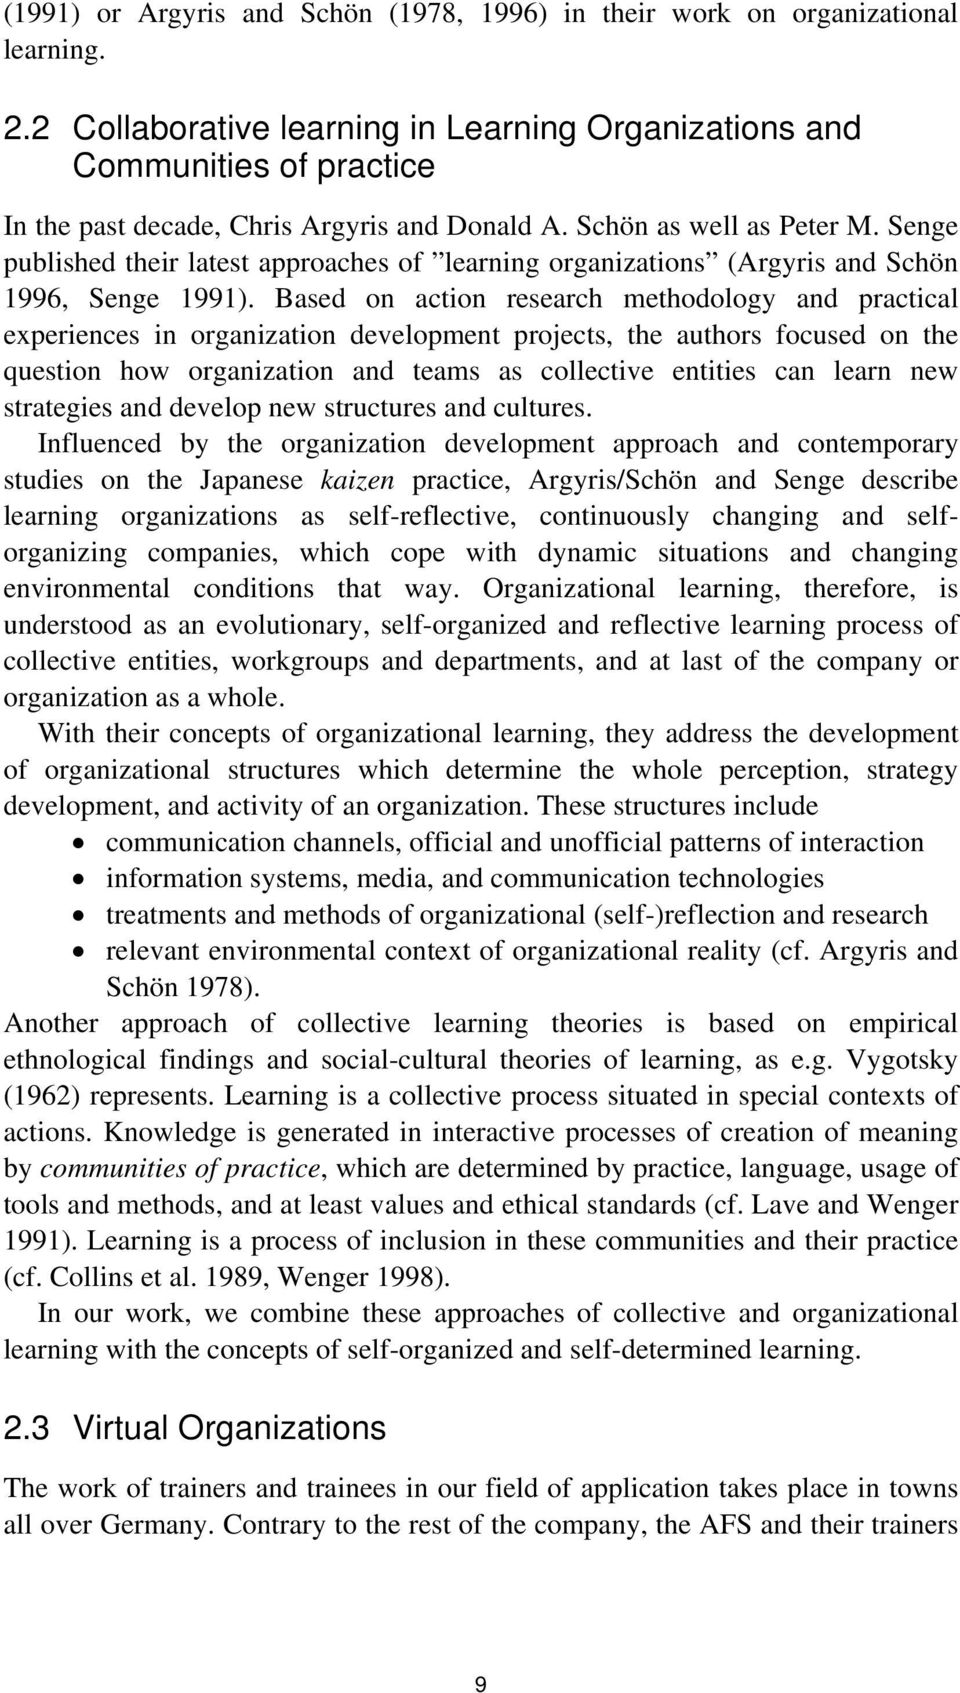 Senge published their latest approaches of learning organizations (Argyris and Schön 1996, Senge 1991).